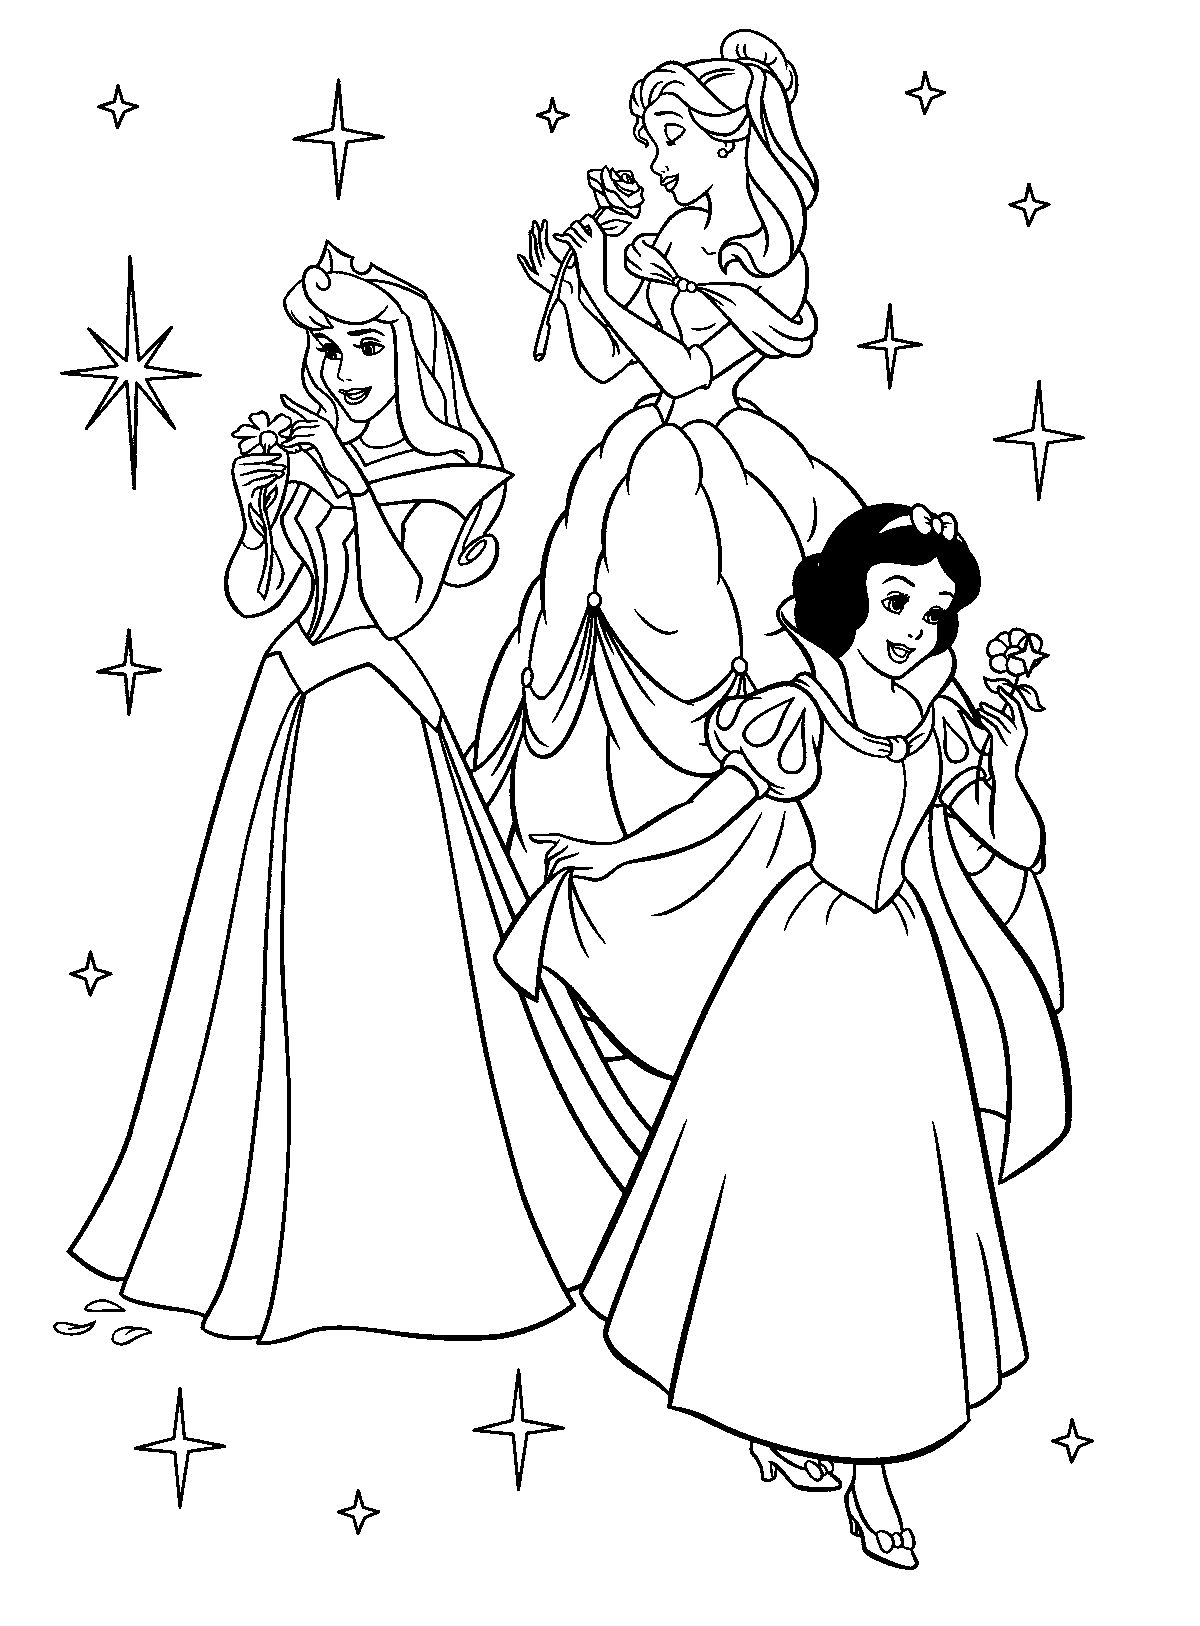 princess printable coloring pages Free Printable Disney Princess Coloring Pages For Kids | Színezők  princess printable coloring pages